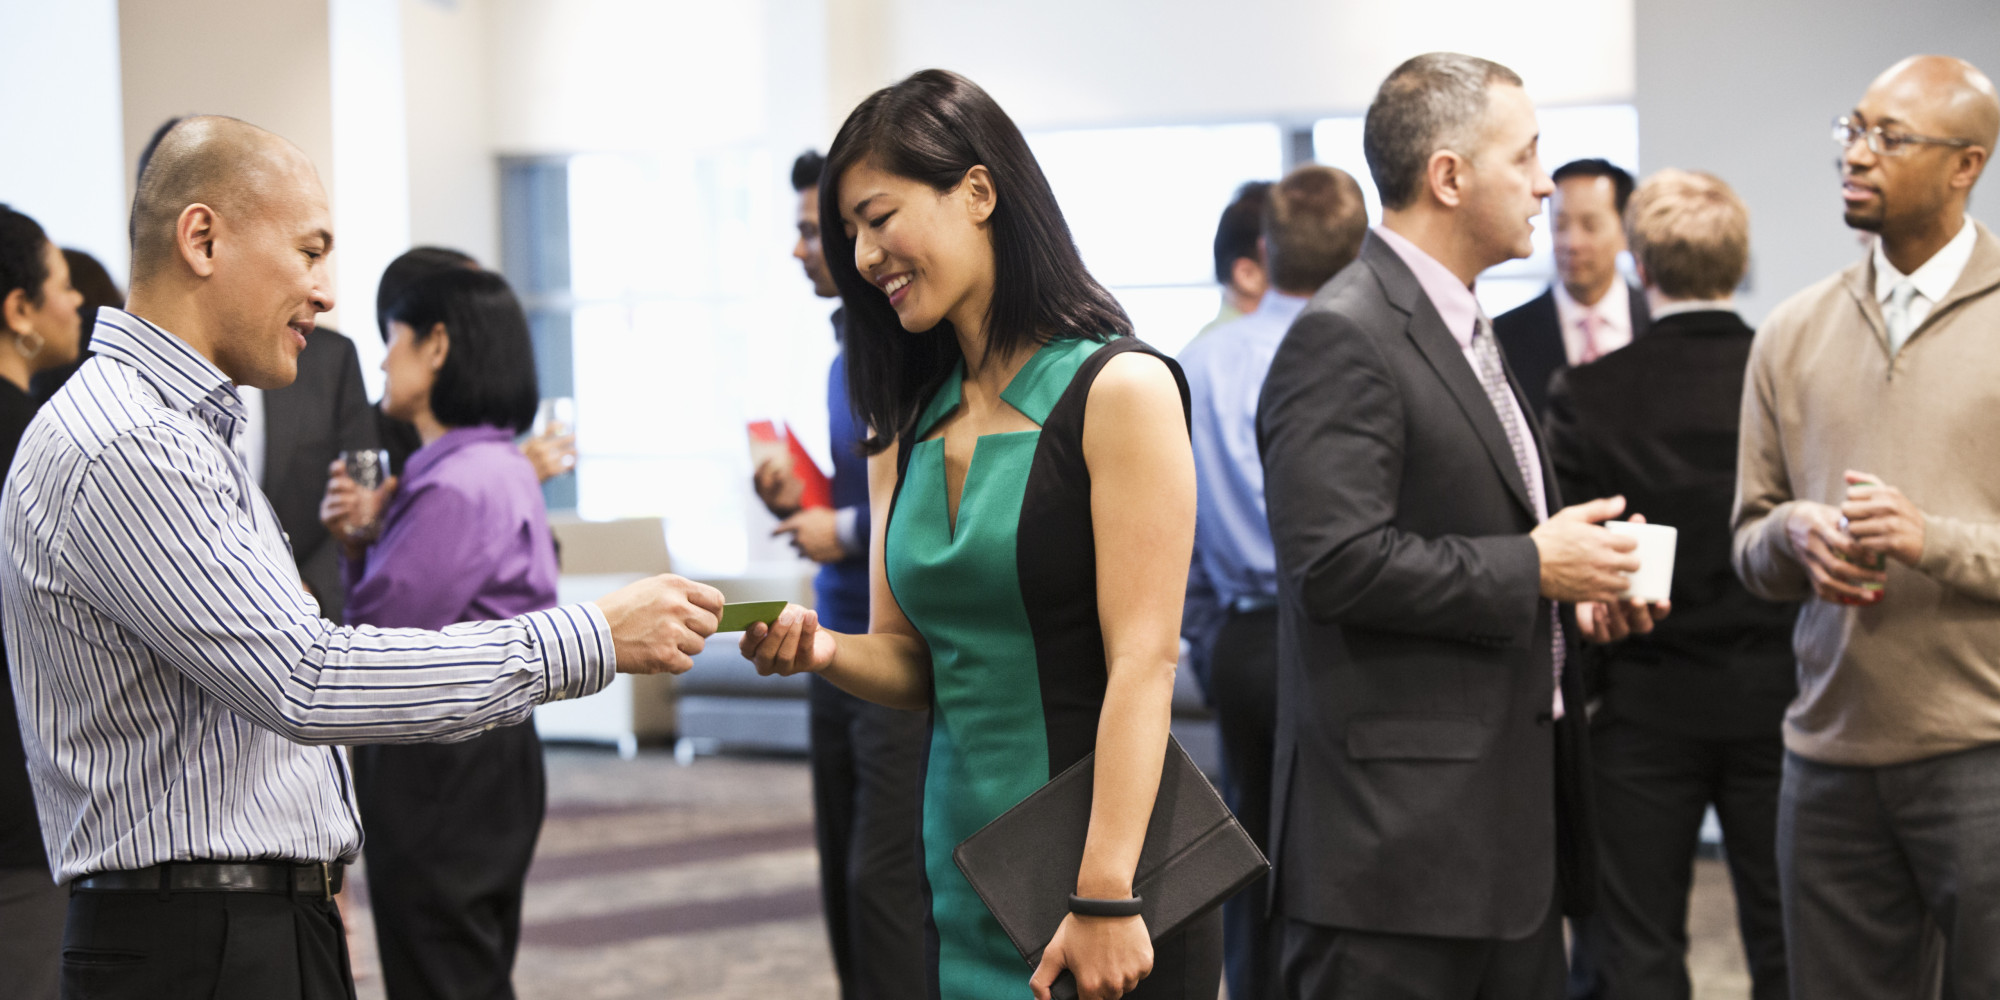 singapore-business-networking